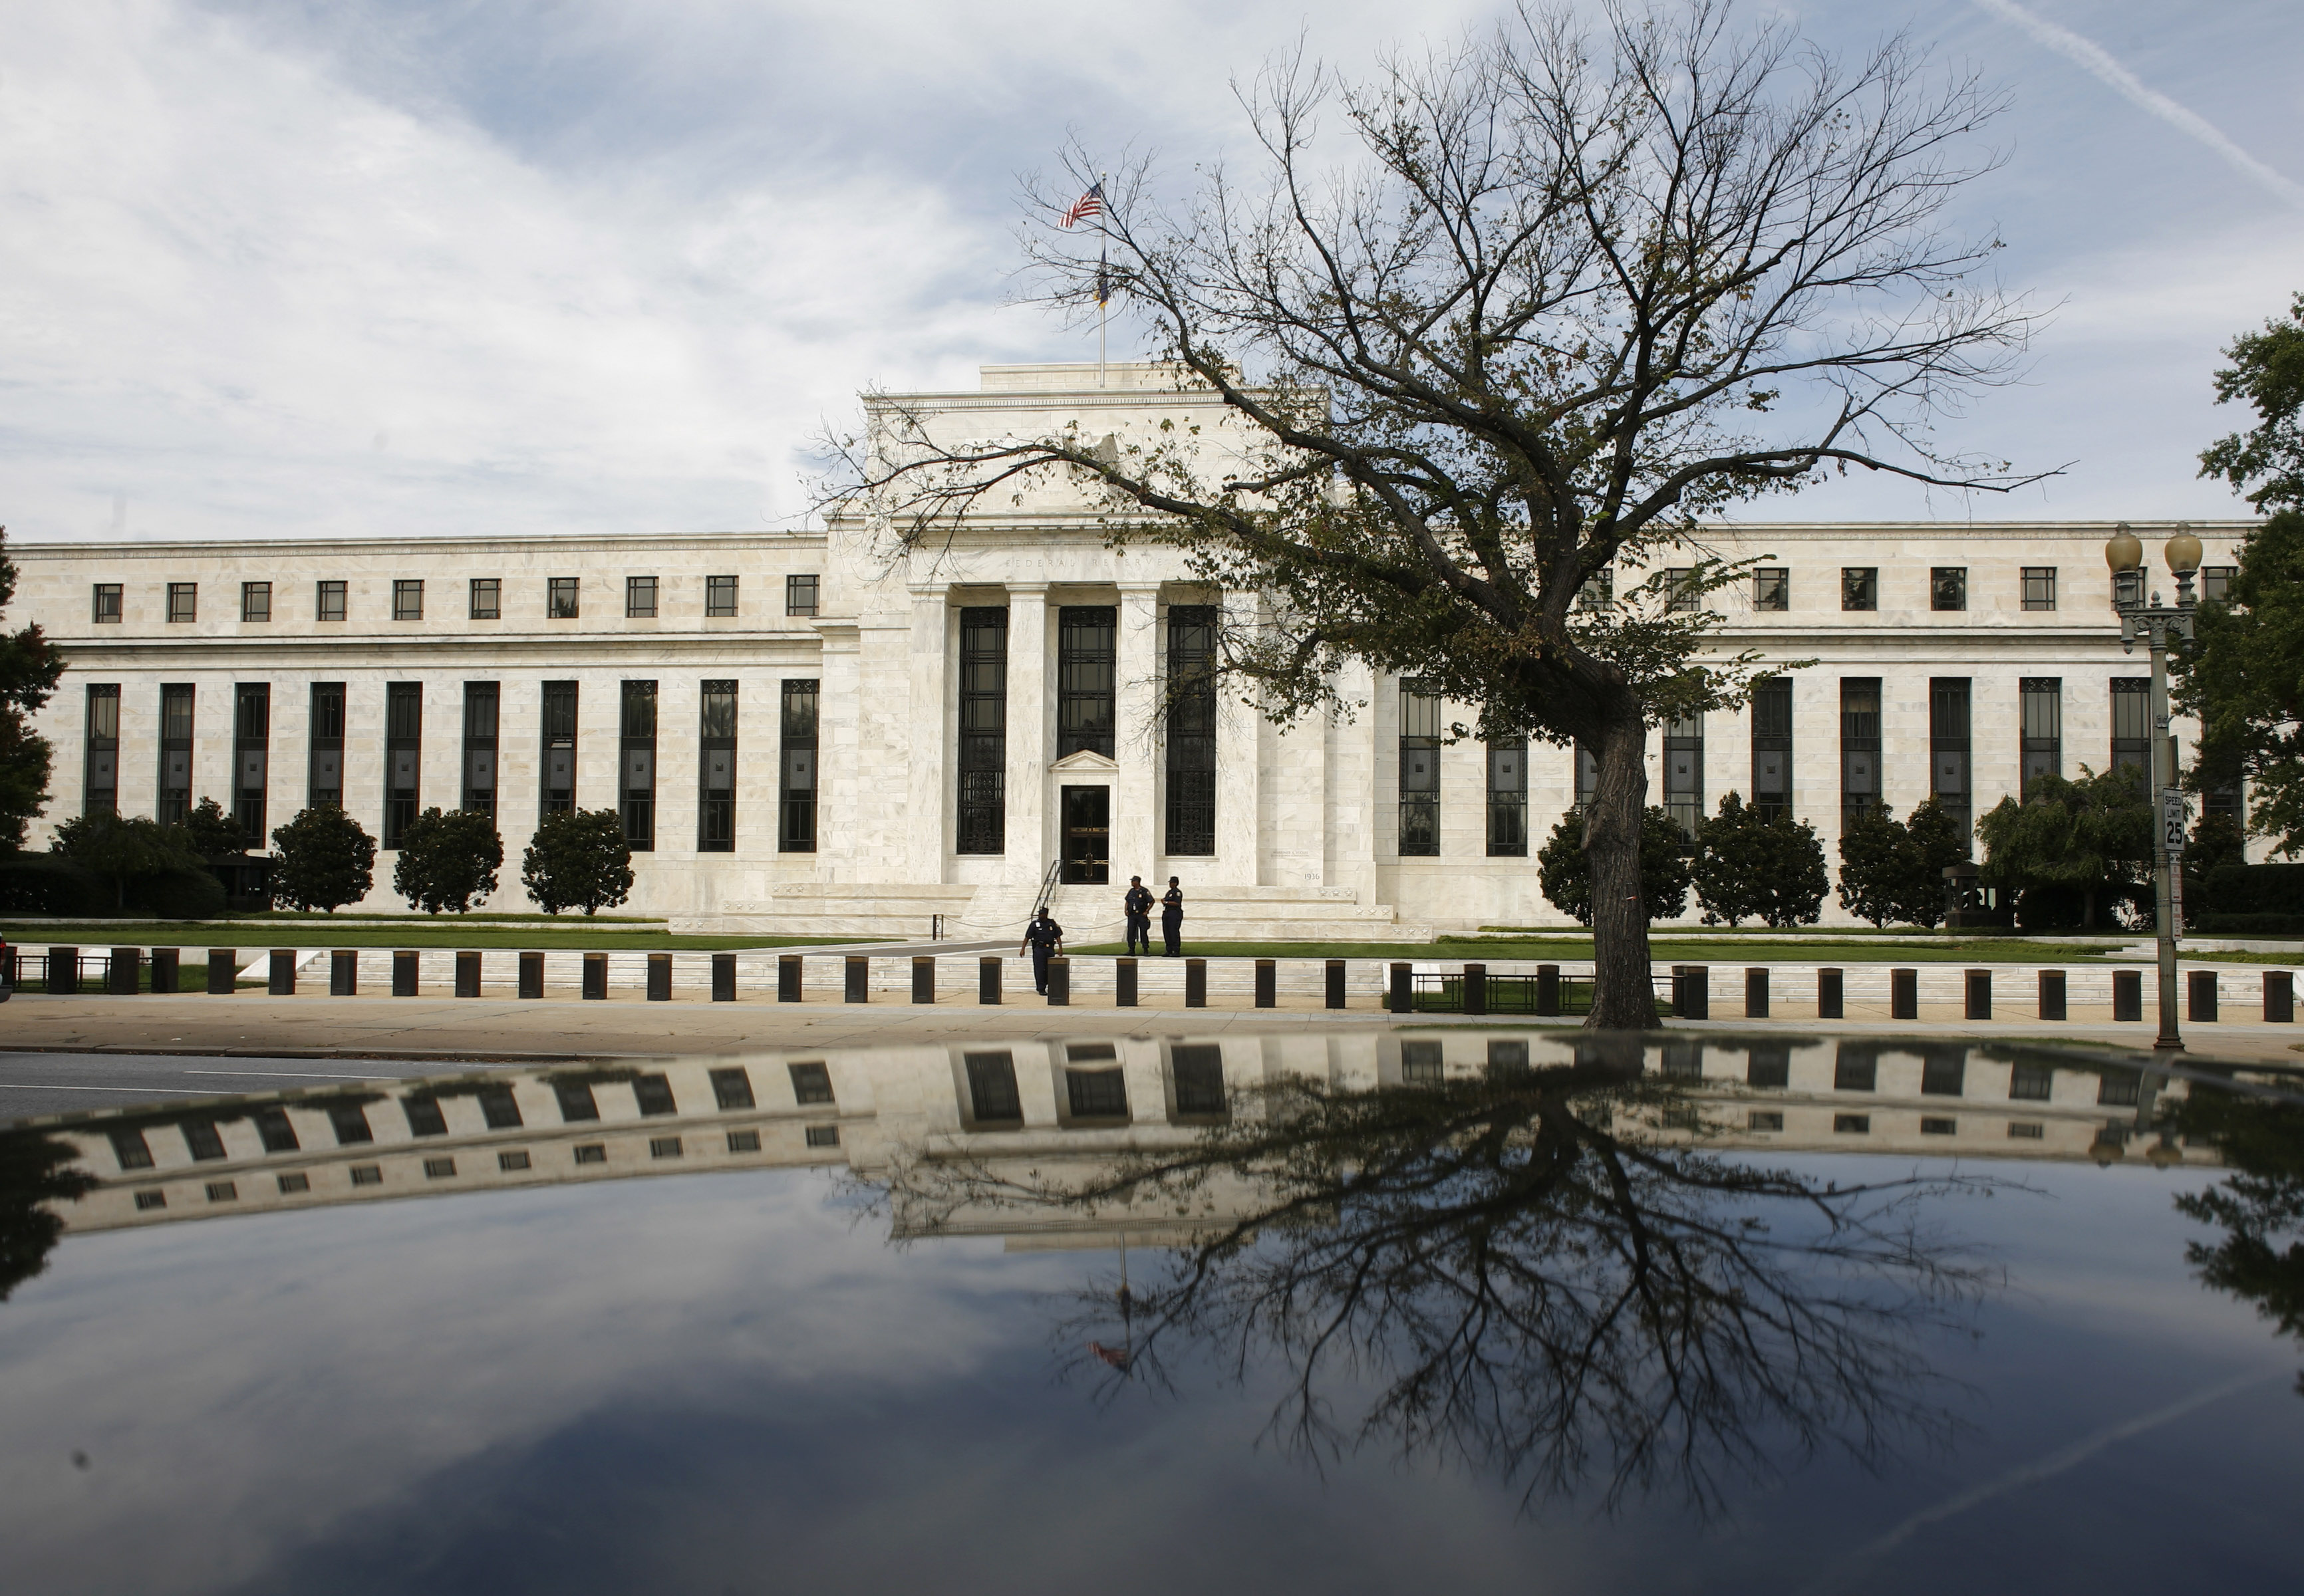 The Federal Reserve Building is reflected on a car in Washington